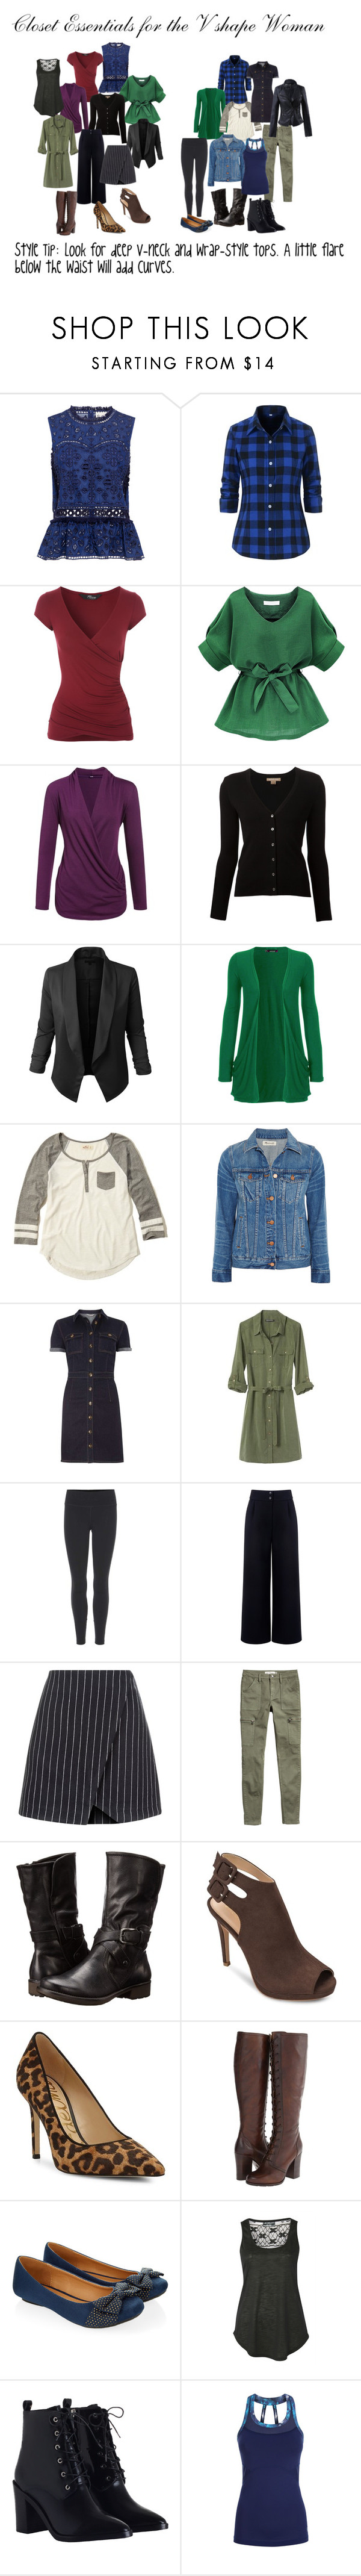 """""""Closet Essentials for the V Shaped Woman"""" by jackie-mallet on Polyvore featuring Sea, New York, Michael Kors, LE3NO, WearAll, Hollister Co., Madewell, Dorothy Perkins, Banana Republic, NIKE and Être Cécile"""